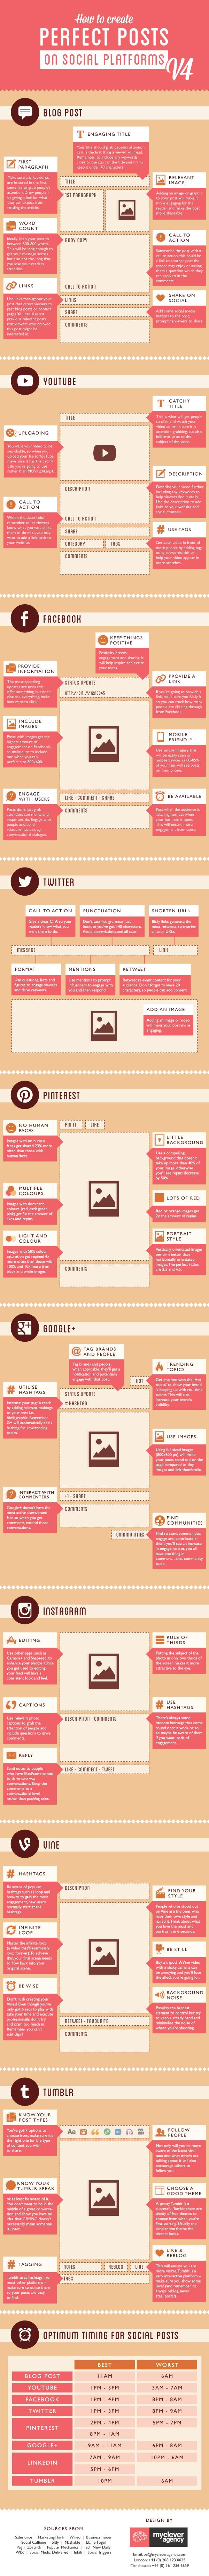 This I will make much use of. Social Media - How to Create Perfect Posts for the Most Popular Social Platforms #Infographic